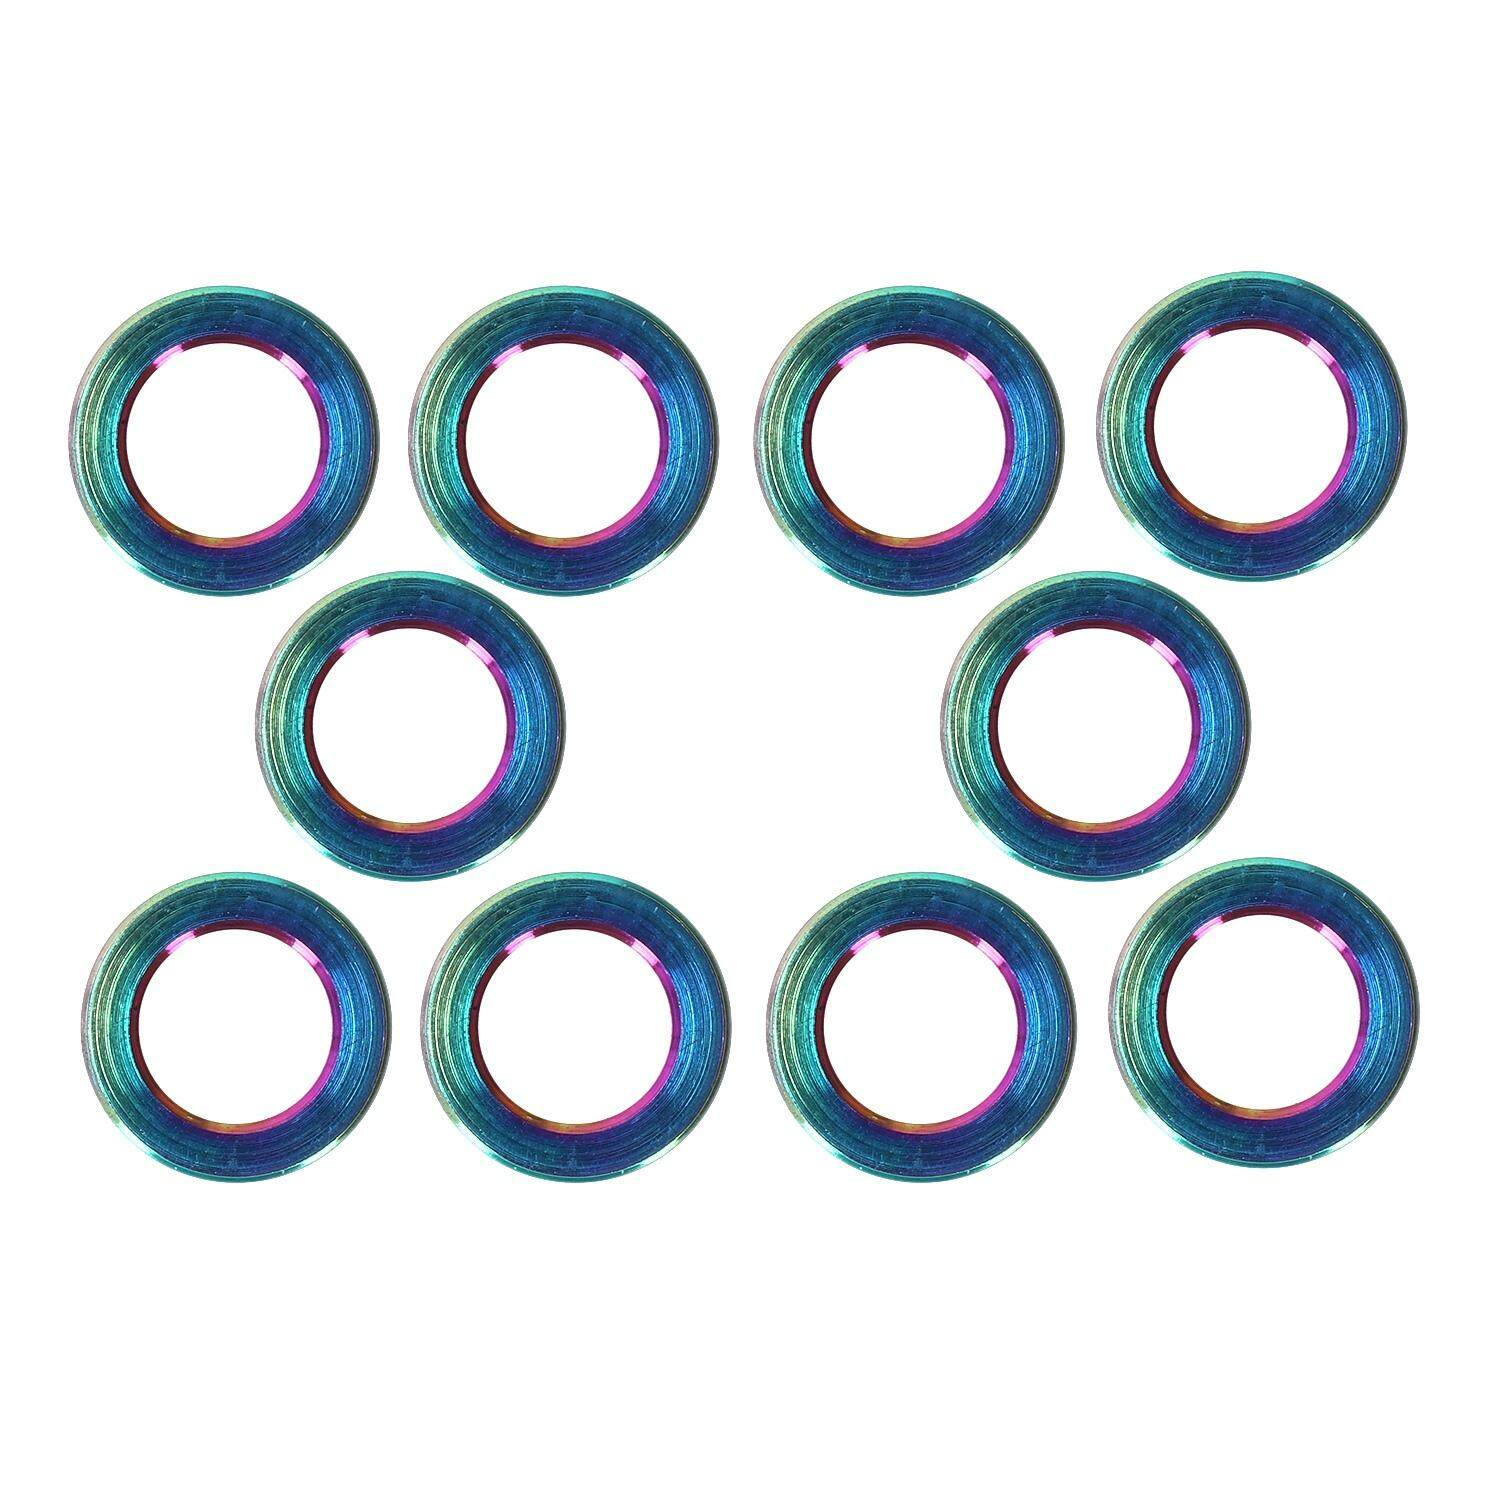 RISK 10PCS/lot Flat Washer for Bicycle Titanium Bike Ti Bolts Screw Spacer for MTB Bicyce Bolts Parts Cycling Bolt Spacer Colorful